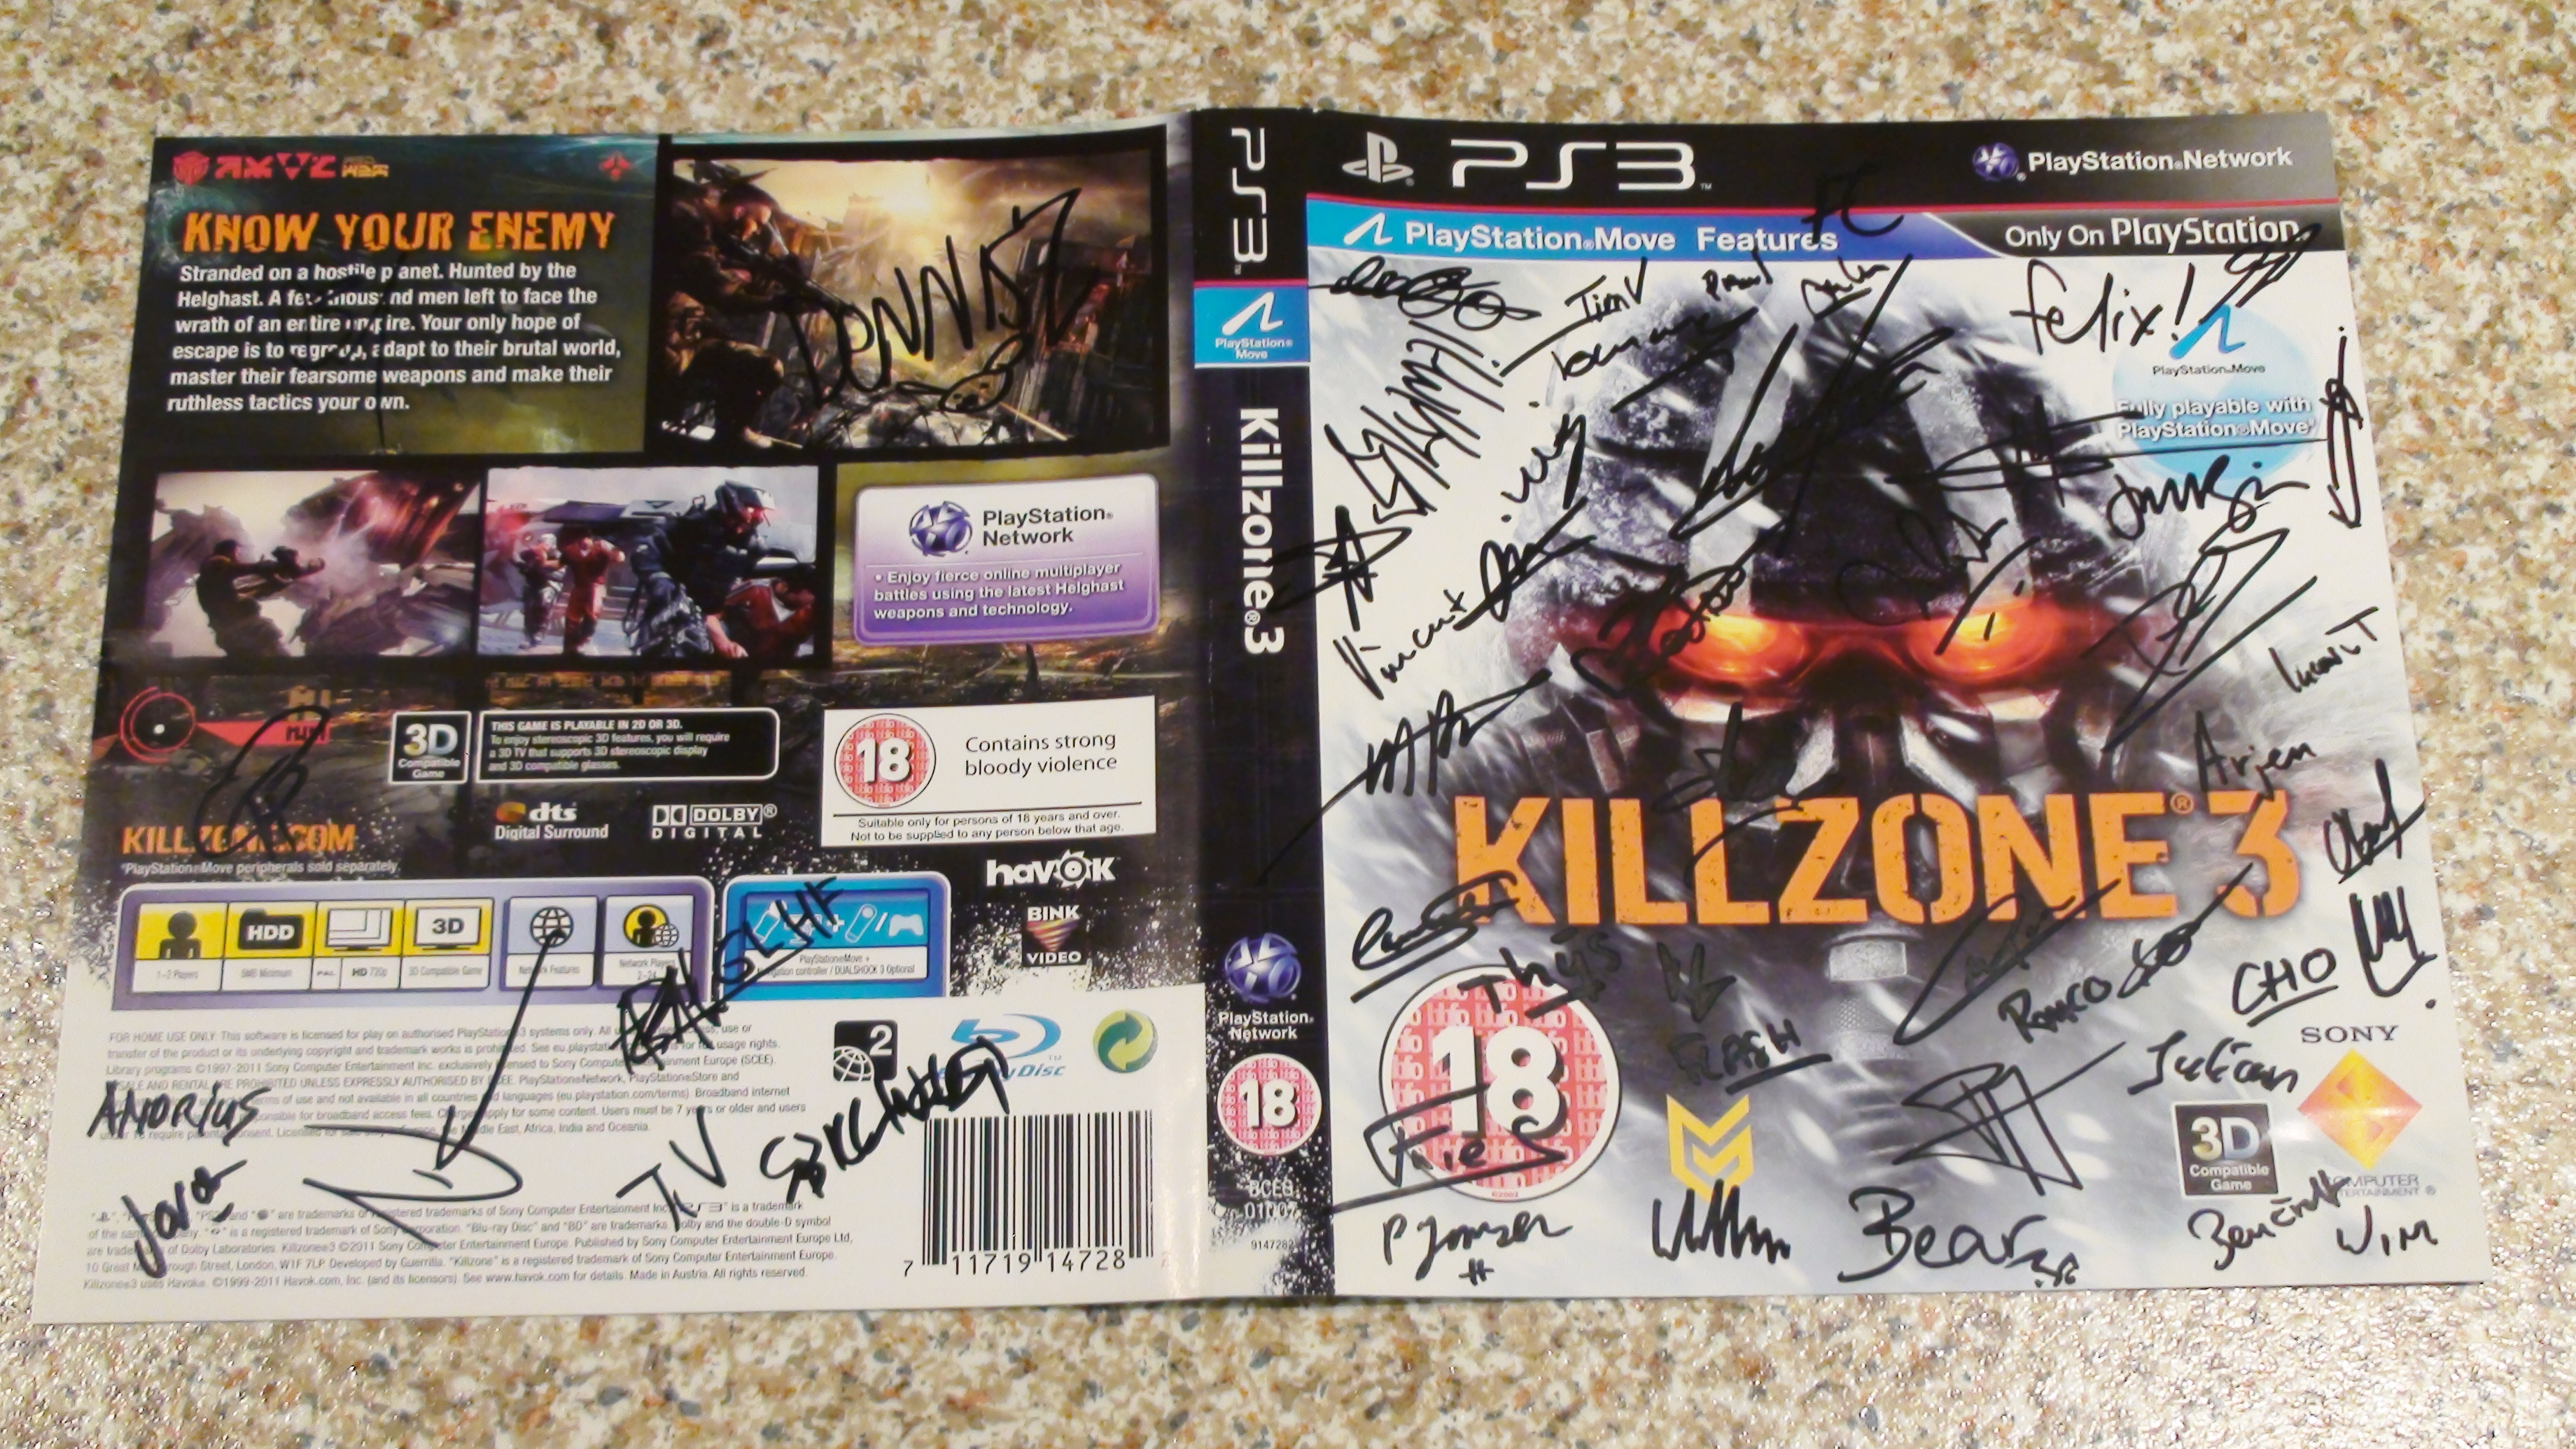 Killzone 3 - Guerrilla Games